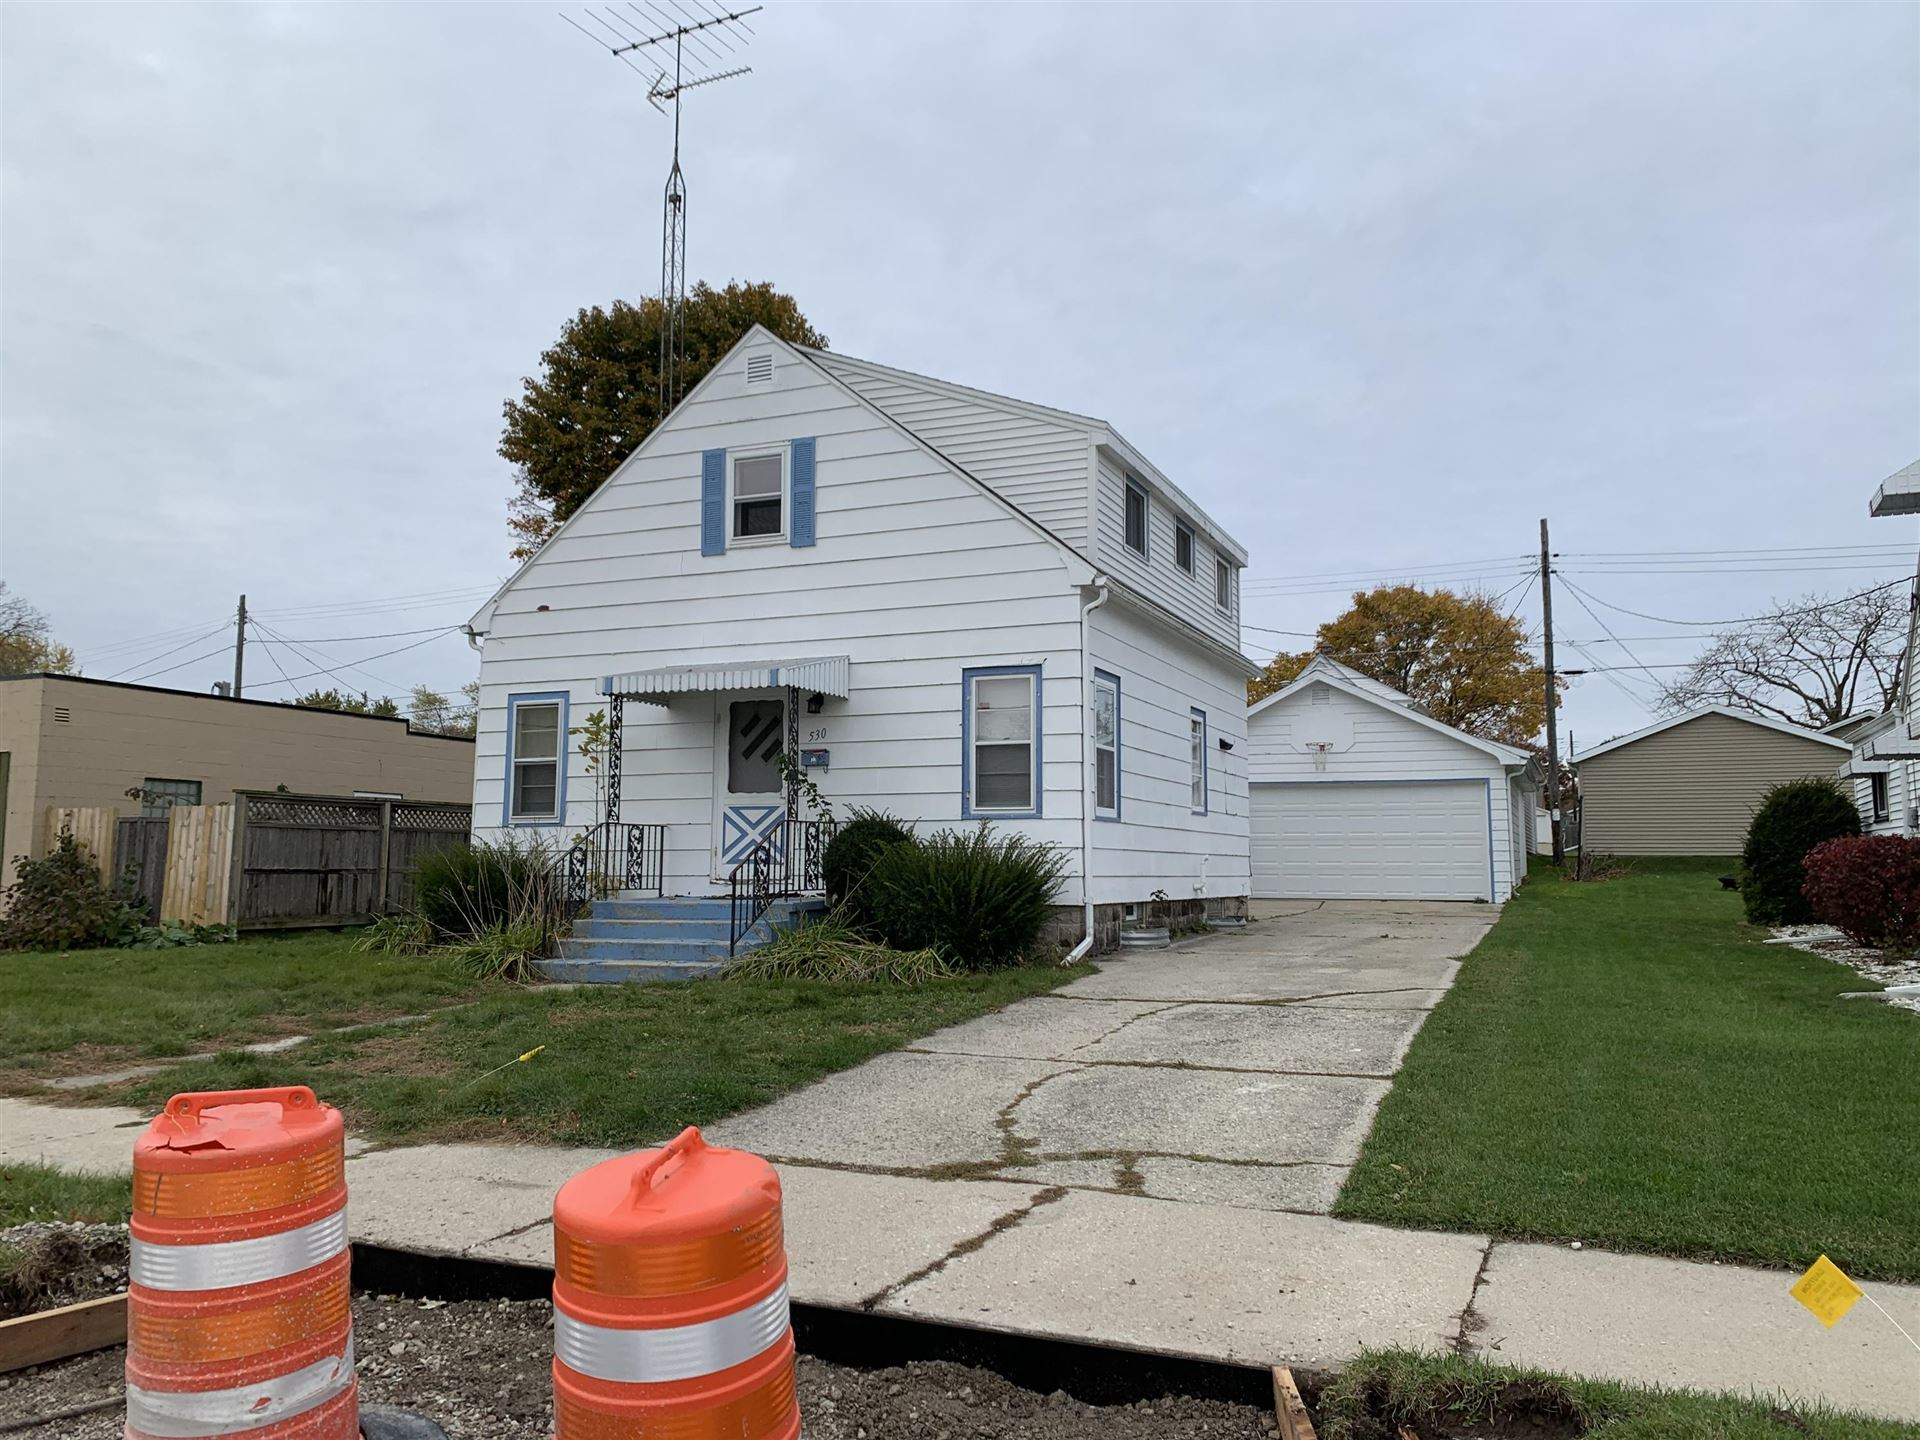 530 S 29th St, Manitowoc, WI 54220 - #: 1717023